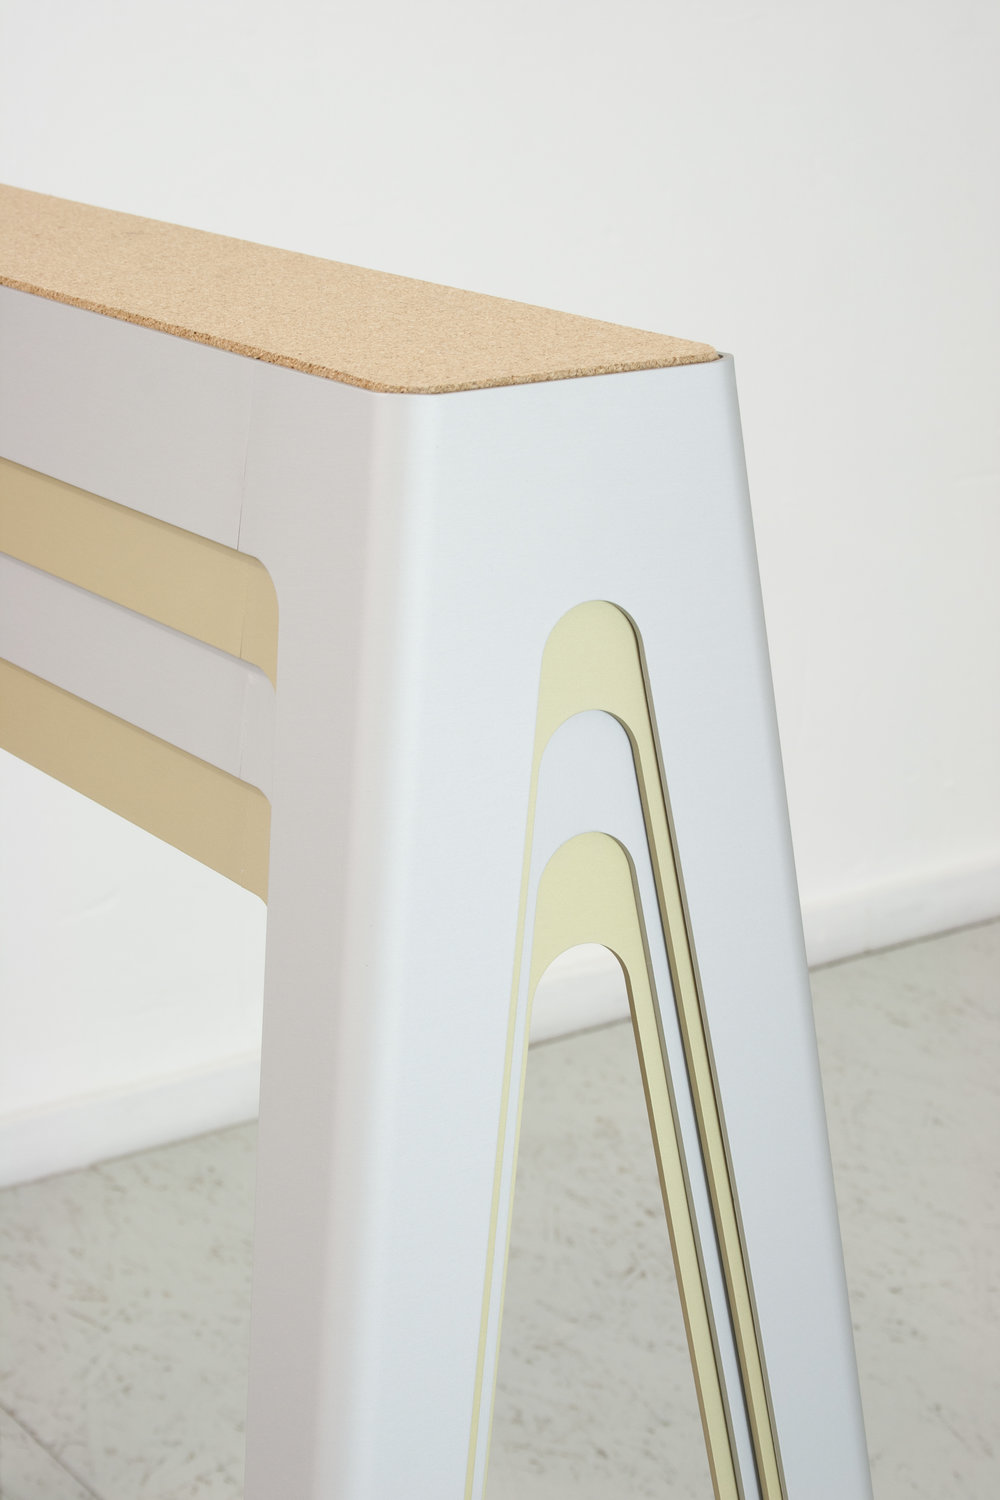 Lightness Table - trestle close up - David Derksen Design.jpg